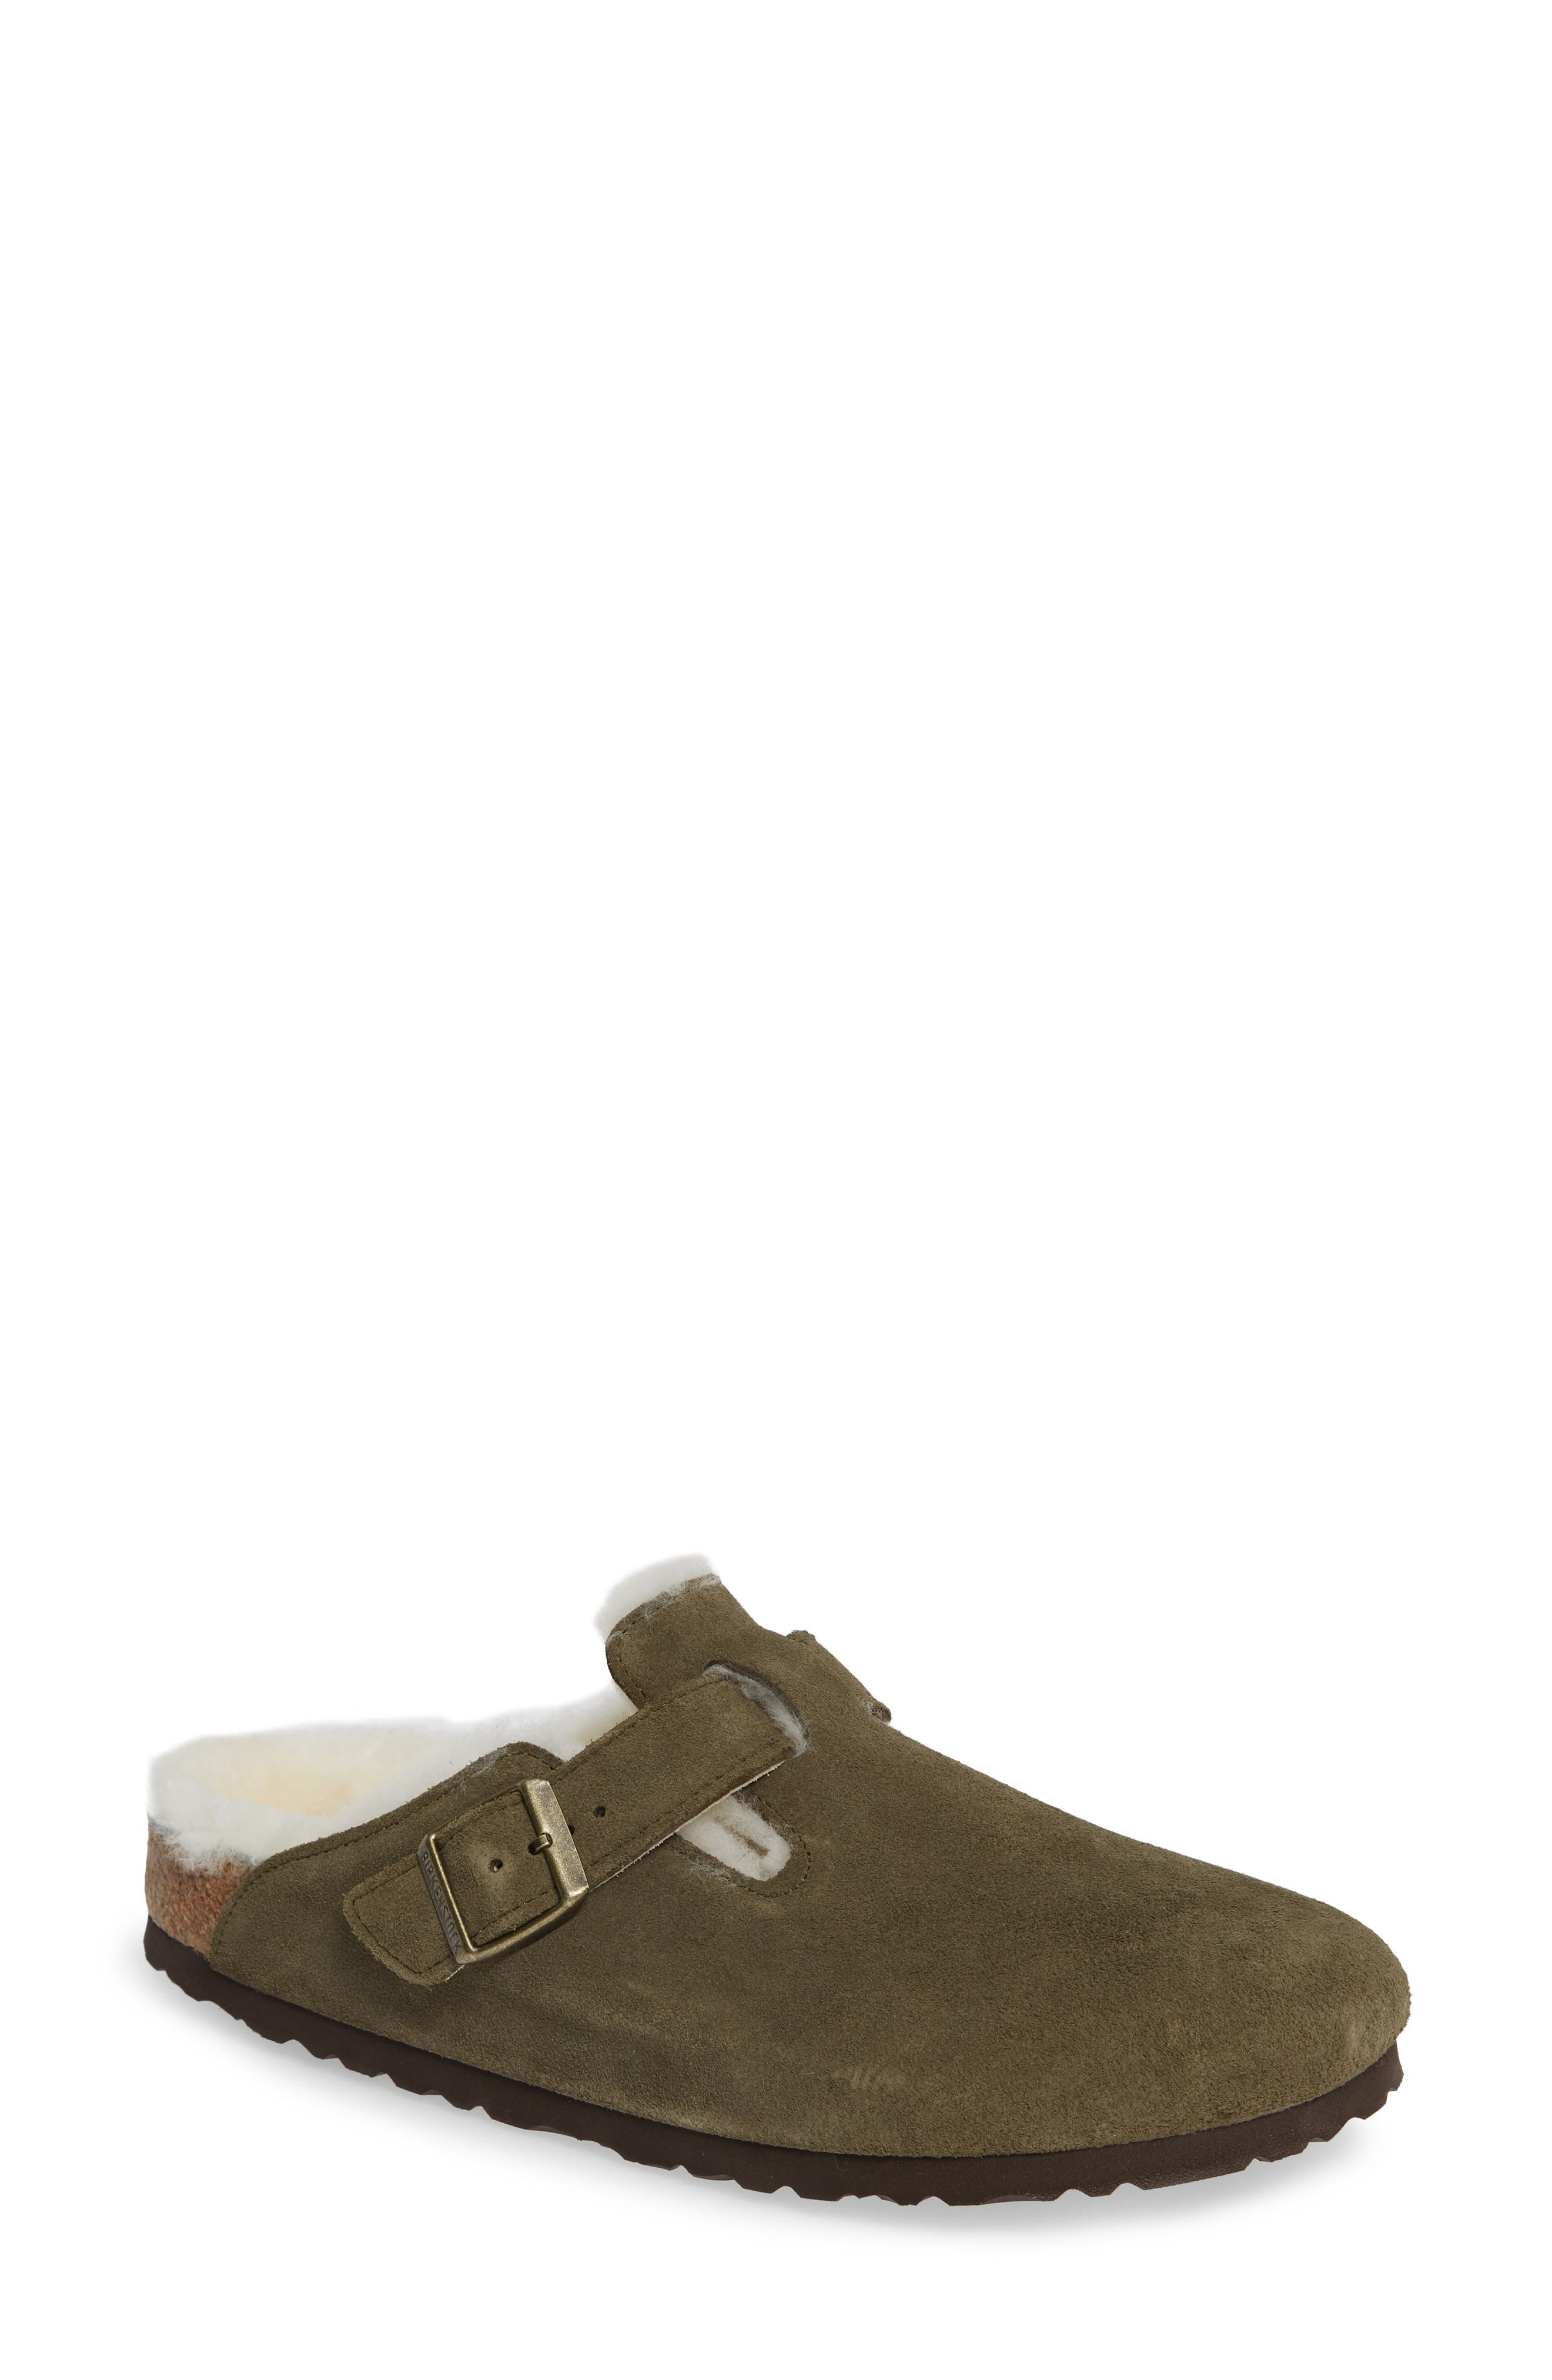 'Boston' Genuine Shearling Lined Clog,                             Main thumbnail 1, color,                             FOREST/ NATURAL SUEDE